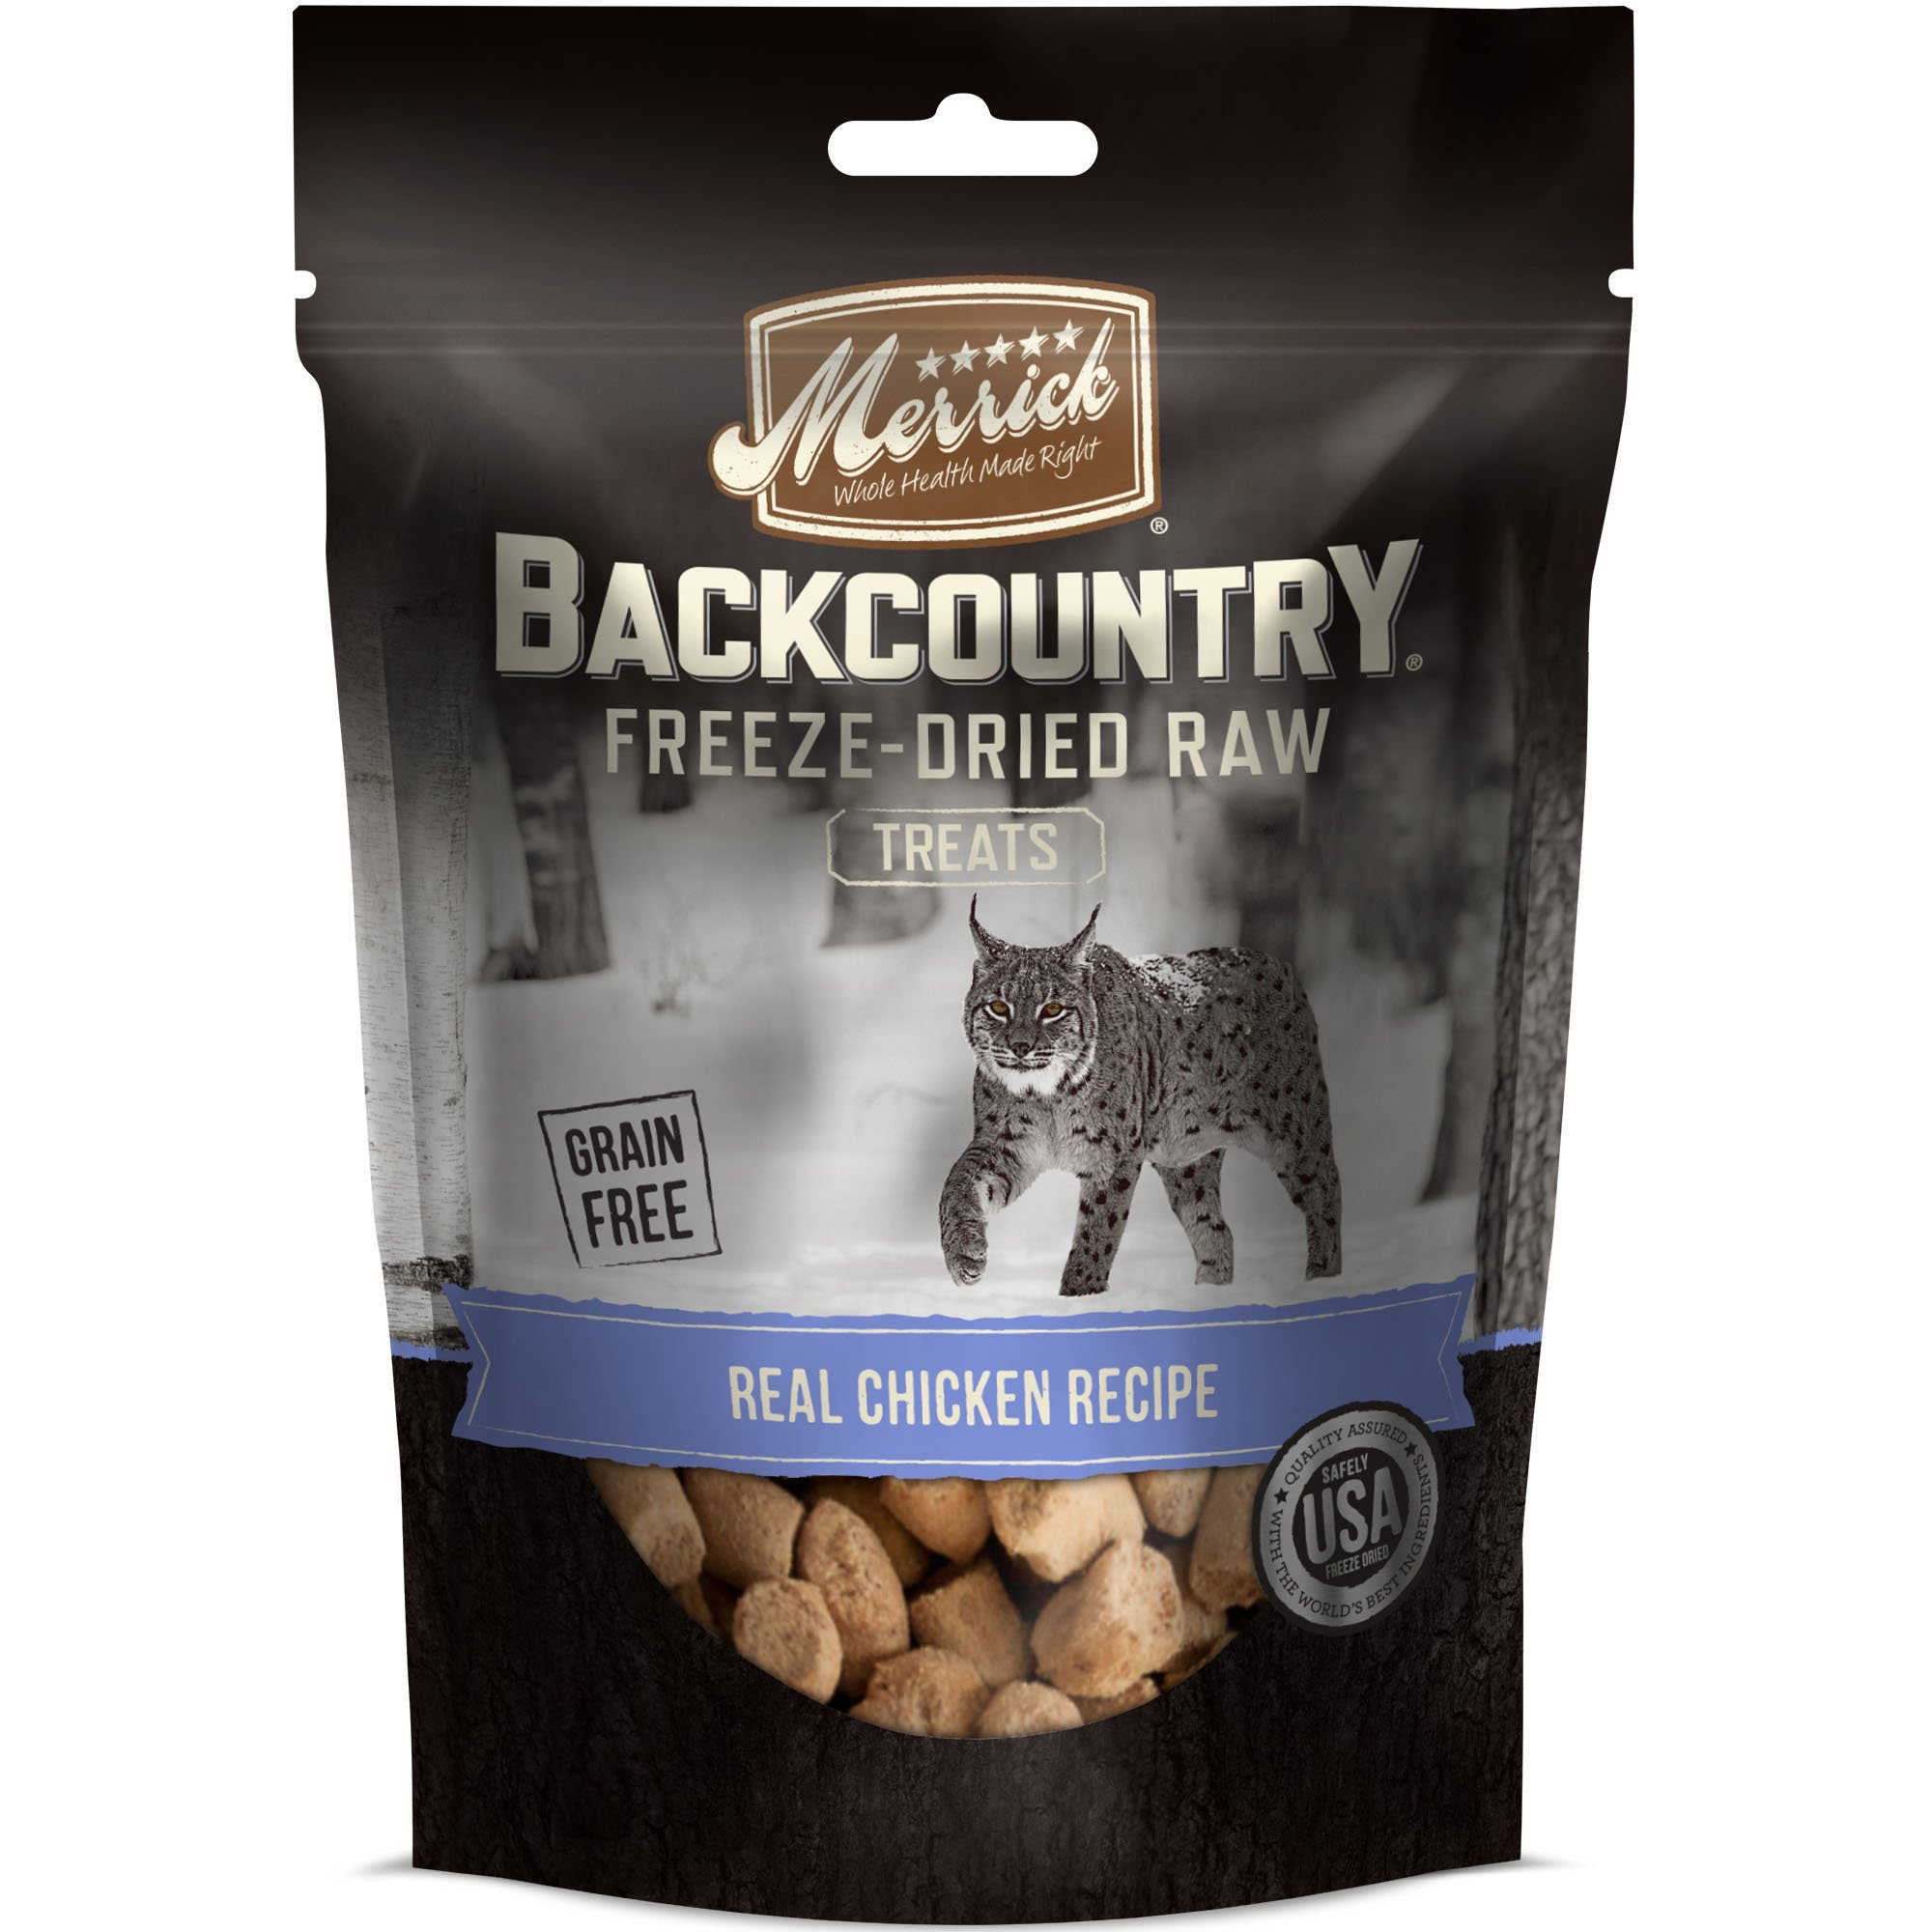 Merrick Backcountry Real Chicken Recipe Freeze-Dried Cat Treats